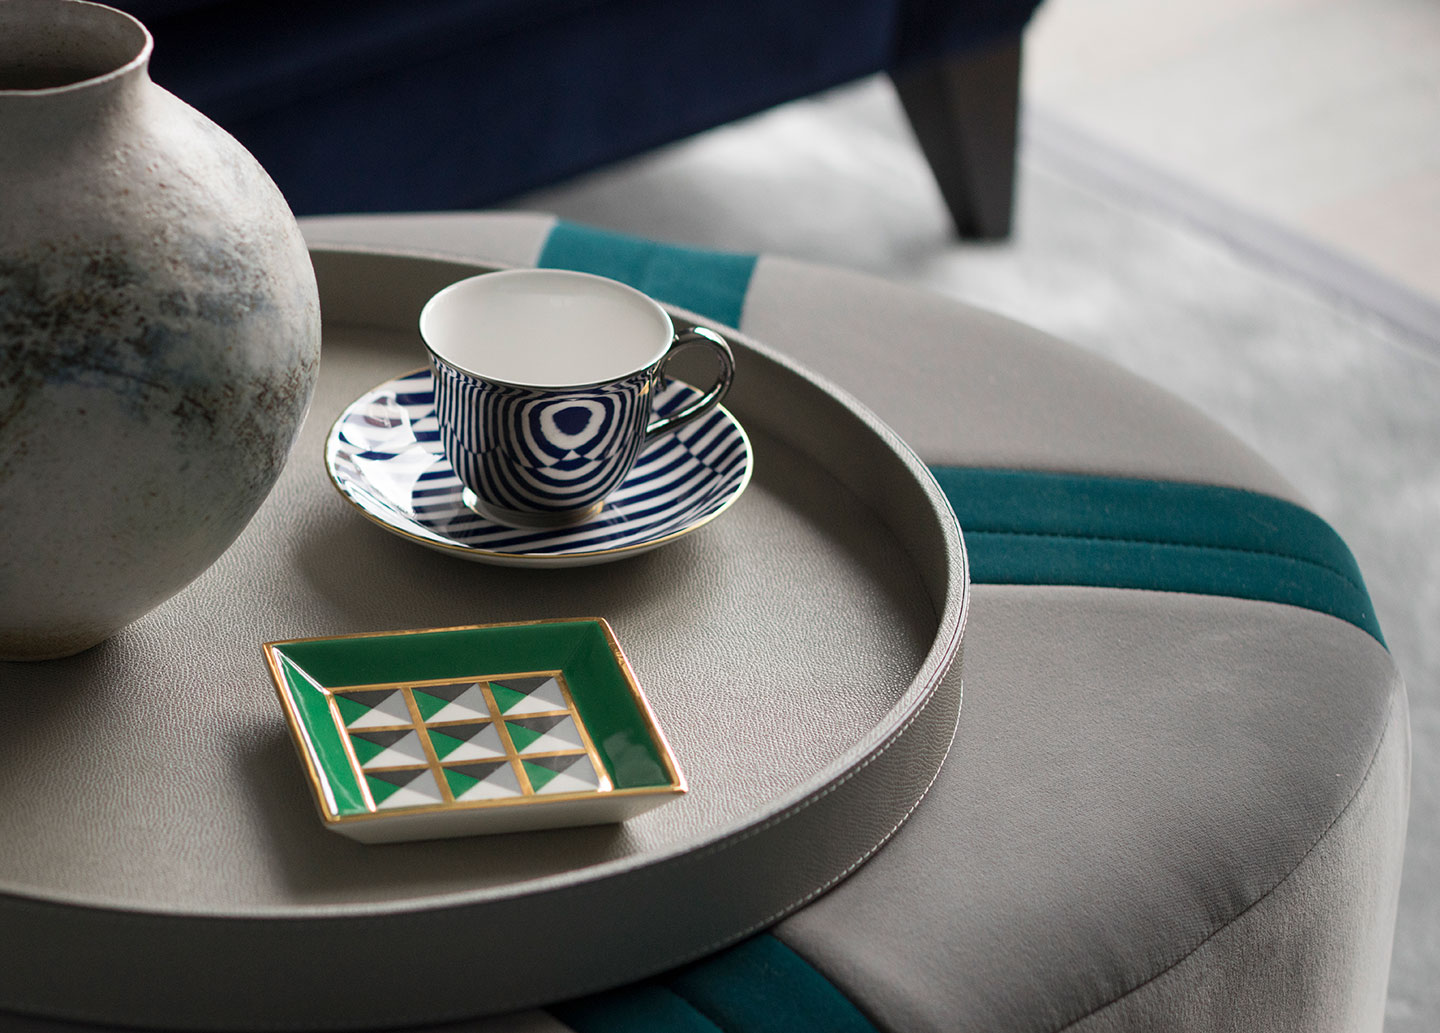 A detail of a cup on a coffee table in a designed interior